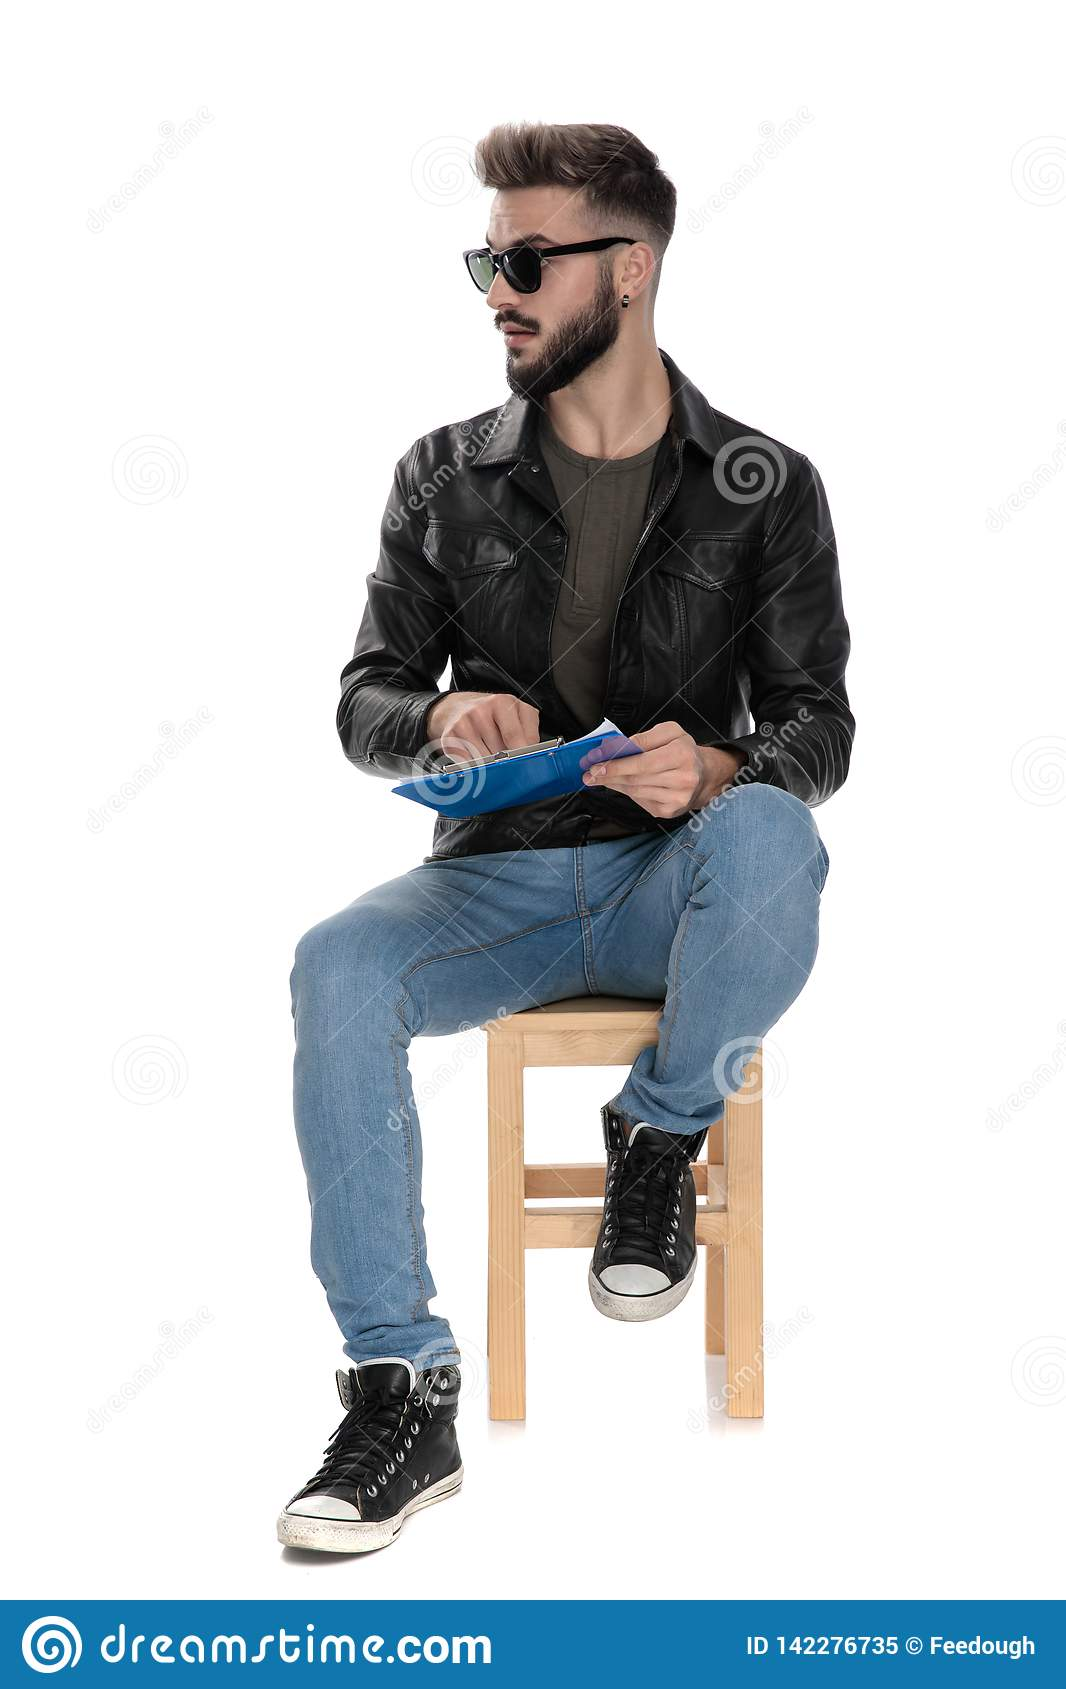 Man pointing his finger at blue folder while looking away